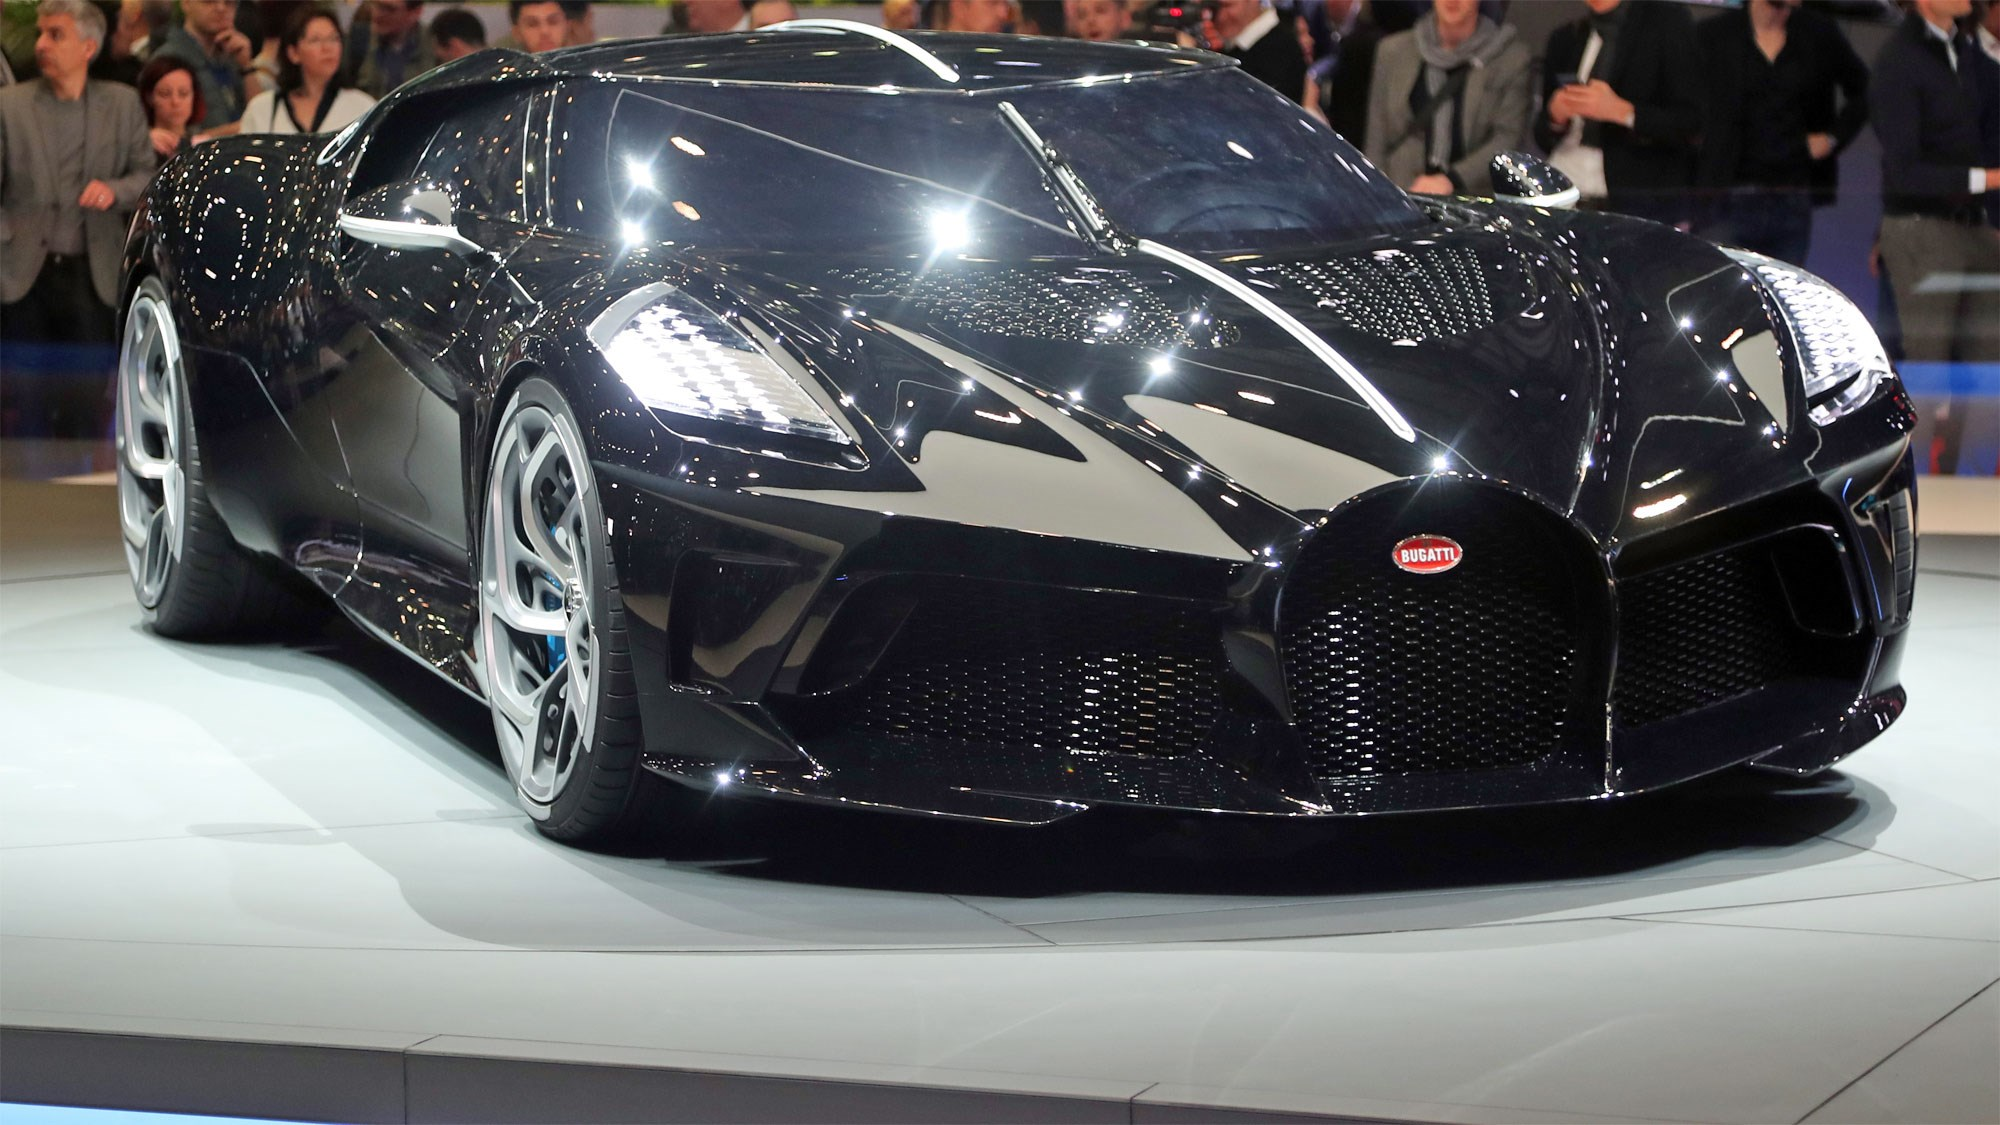 Geneva Motor Show: One-off Bugatti Voiture Noire showcased